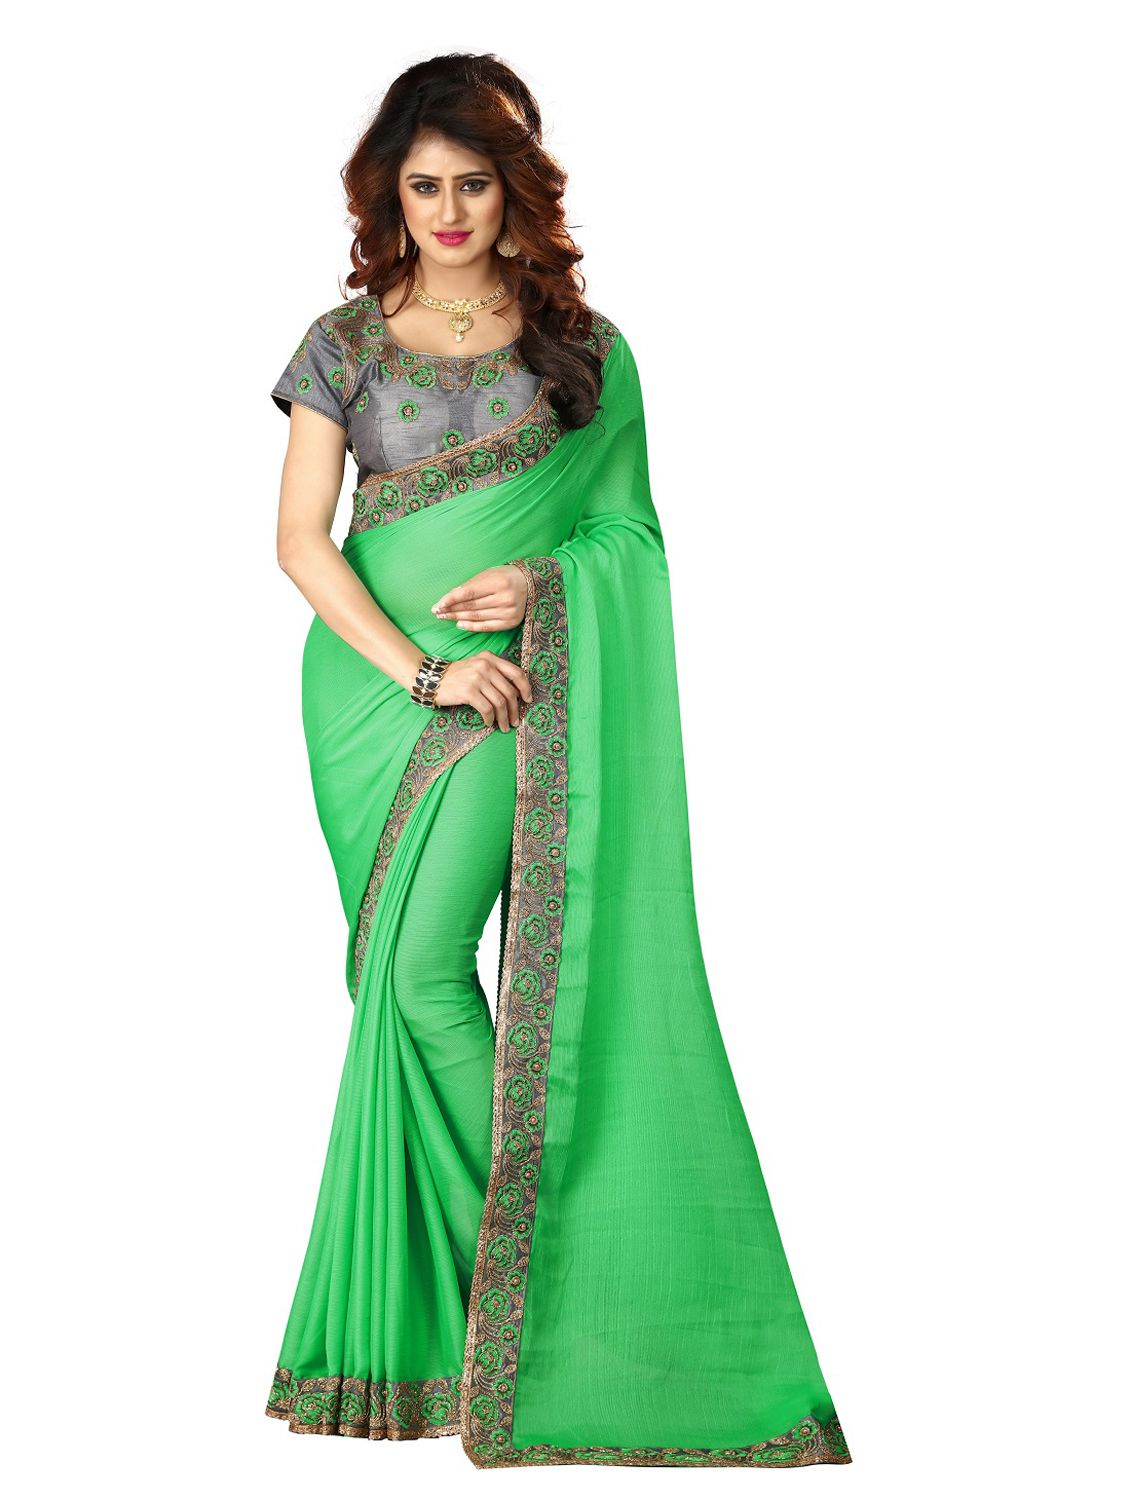 Greenvilla Designs Green Chiffon Saree